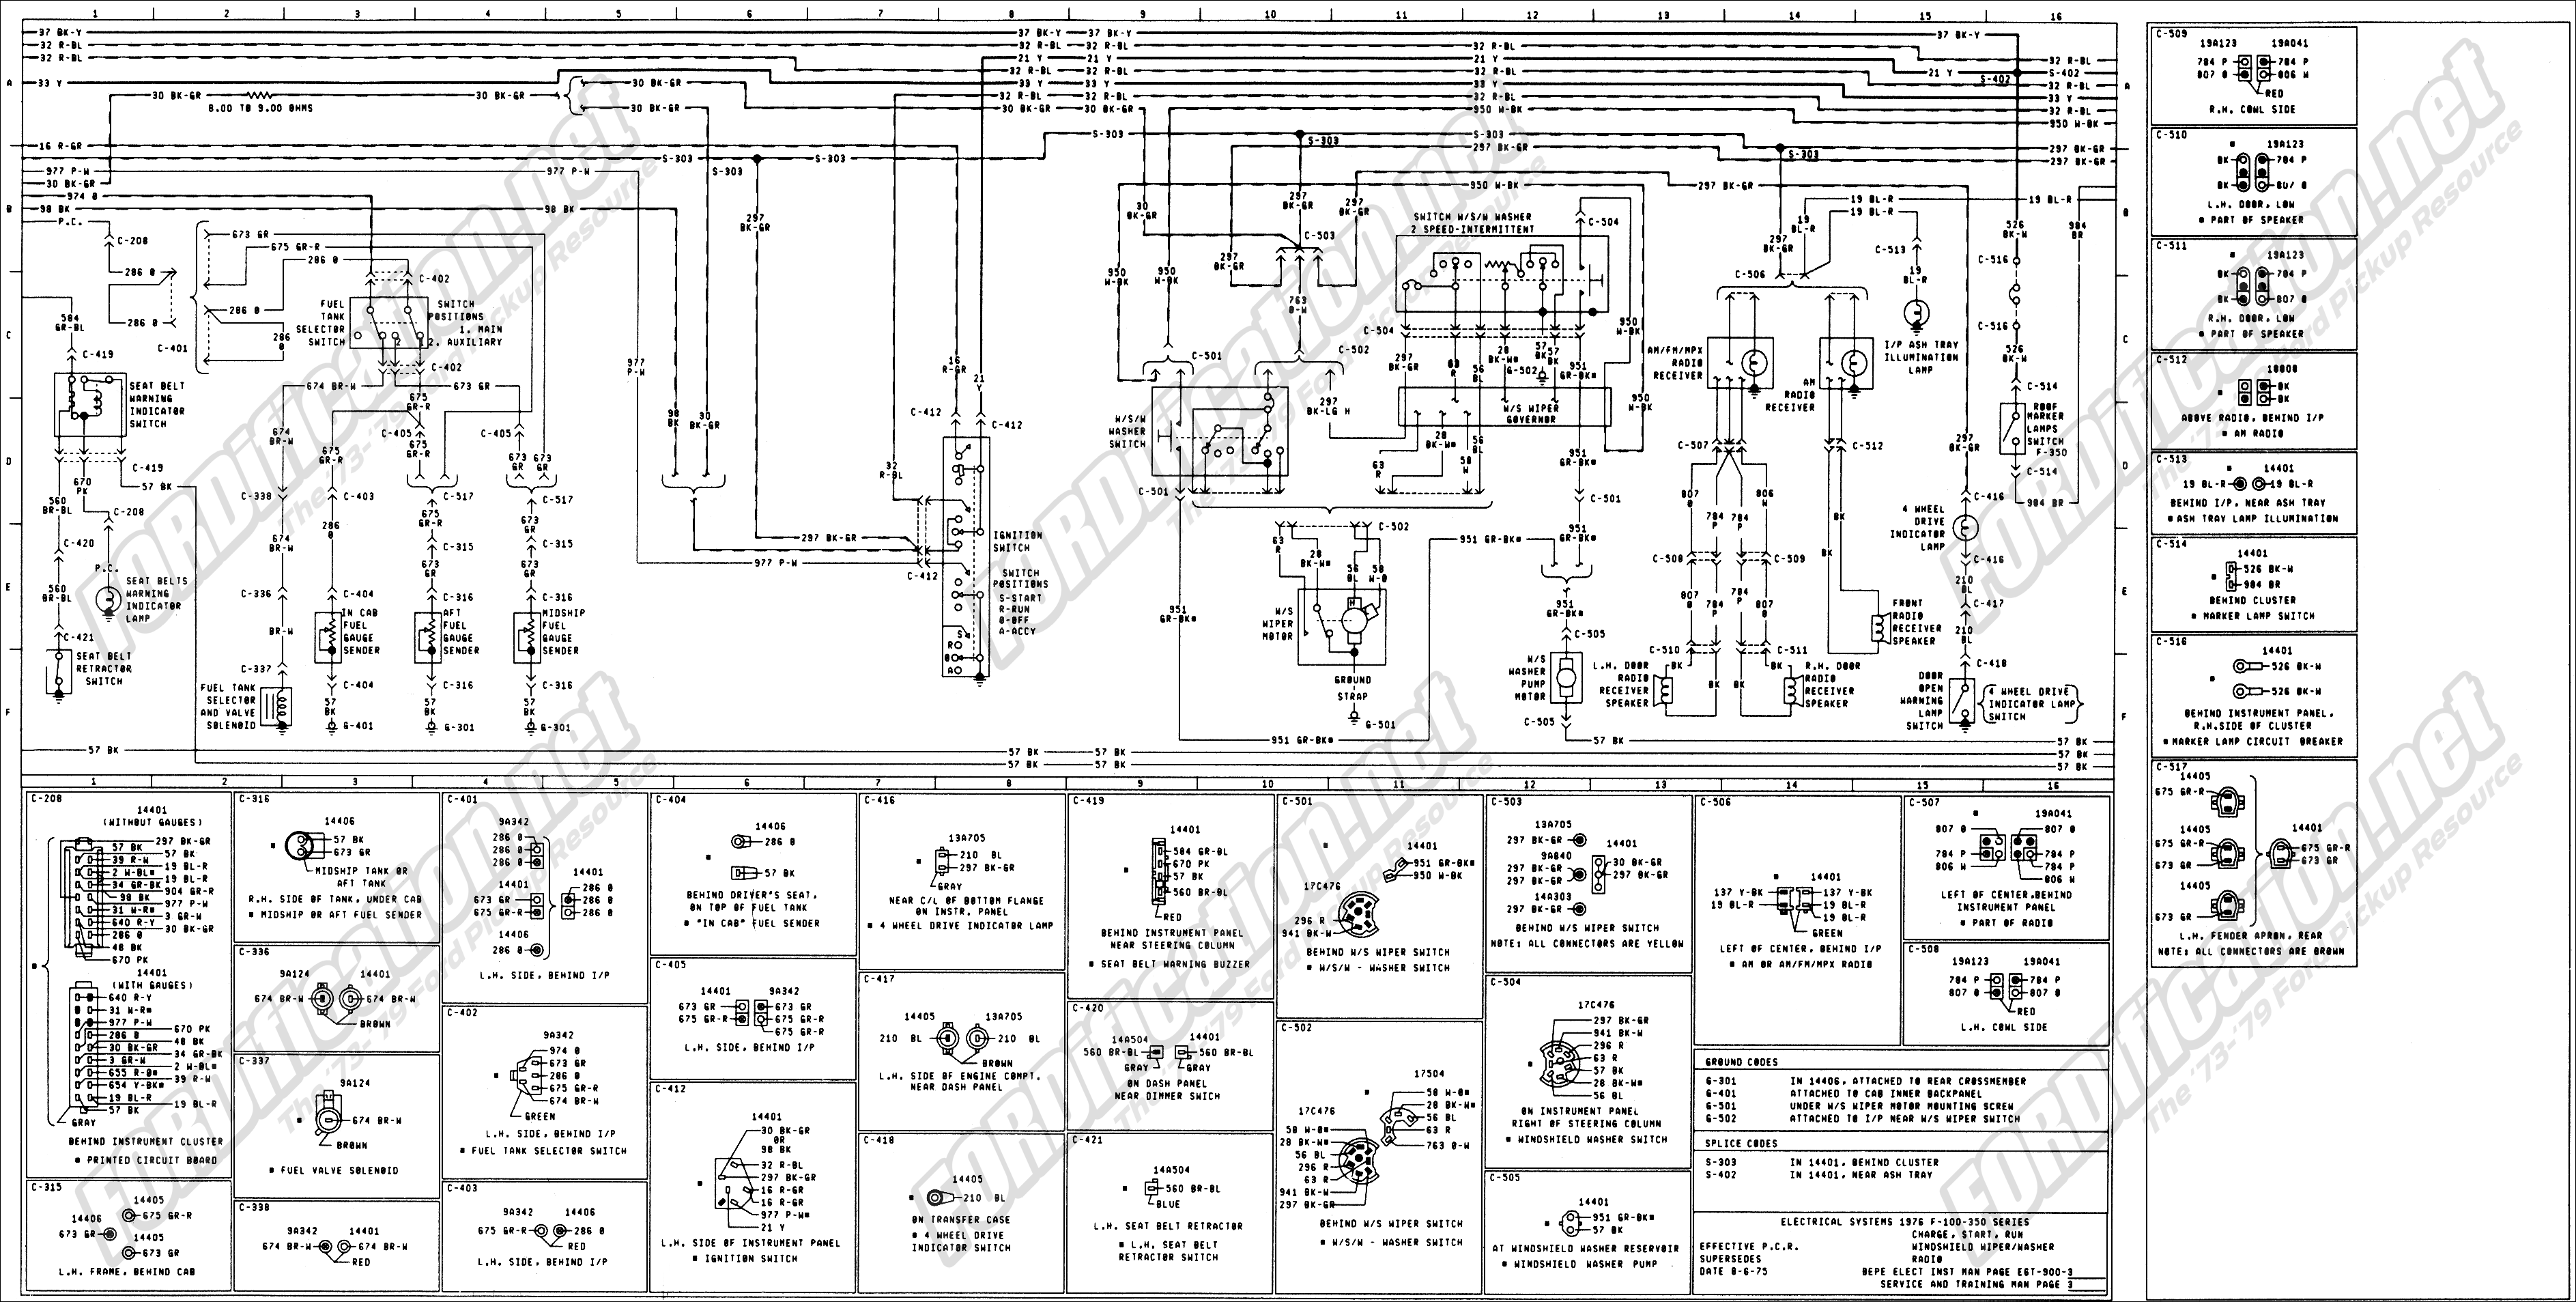 wiring_76master_3of9 1973 1979 ford truck wiring diagrams & schematics fordification net  at crackthecode.co